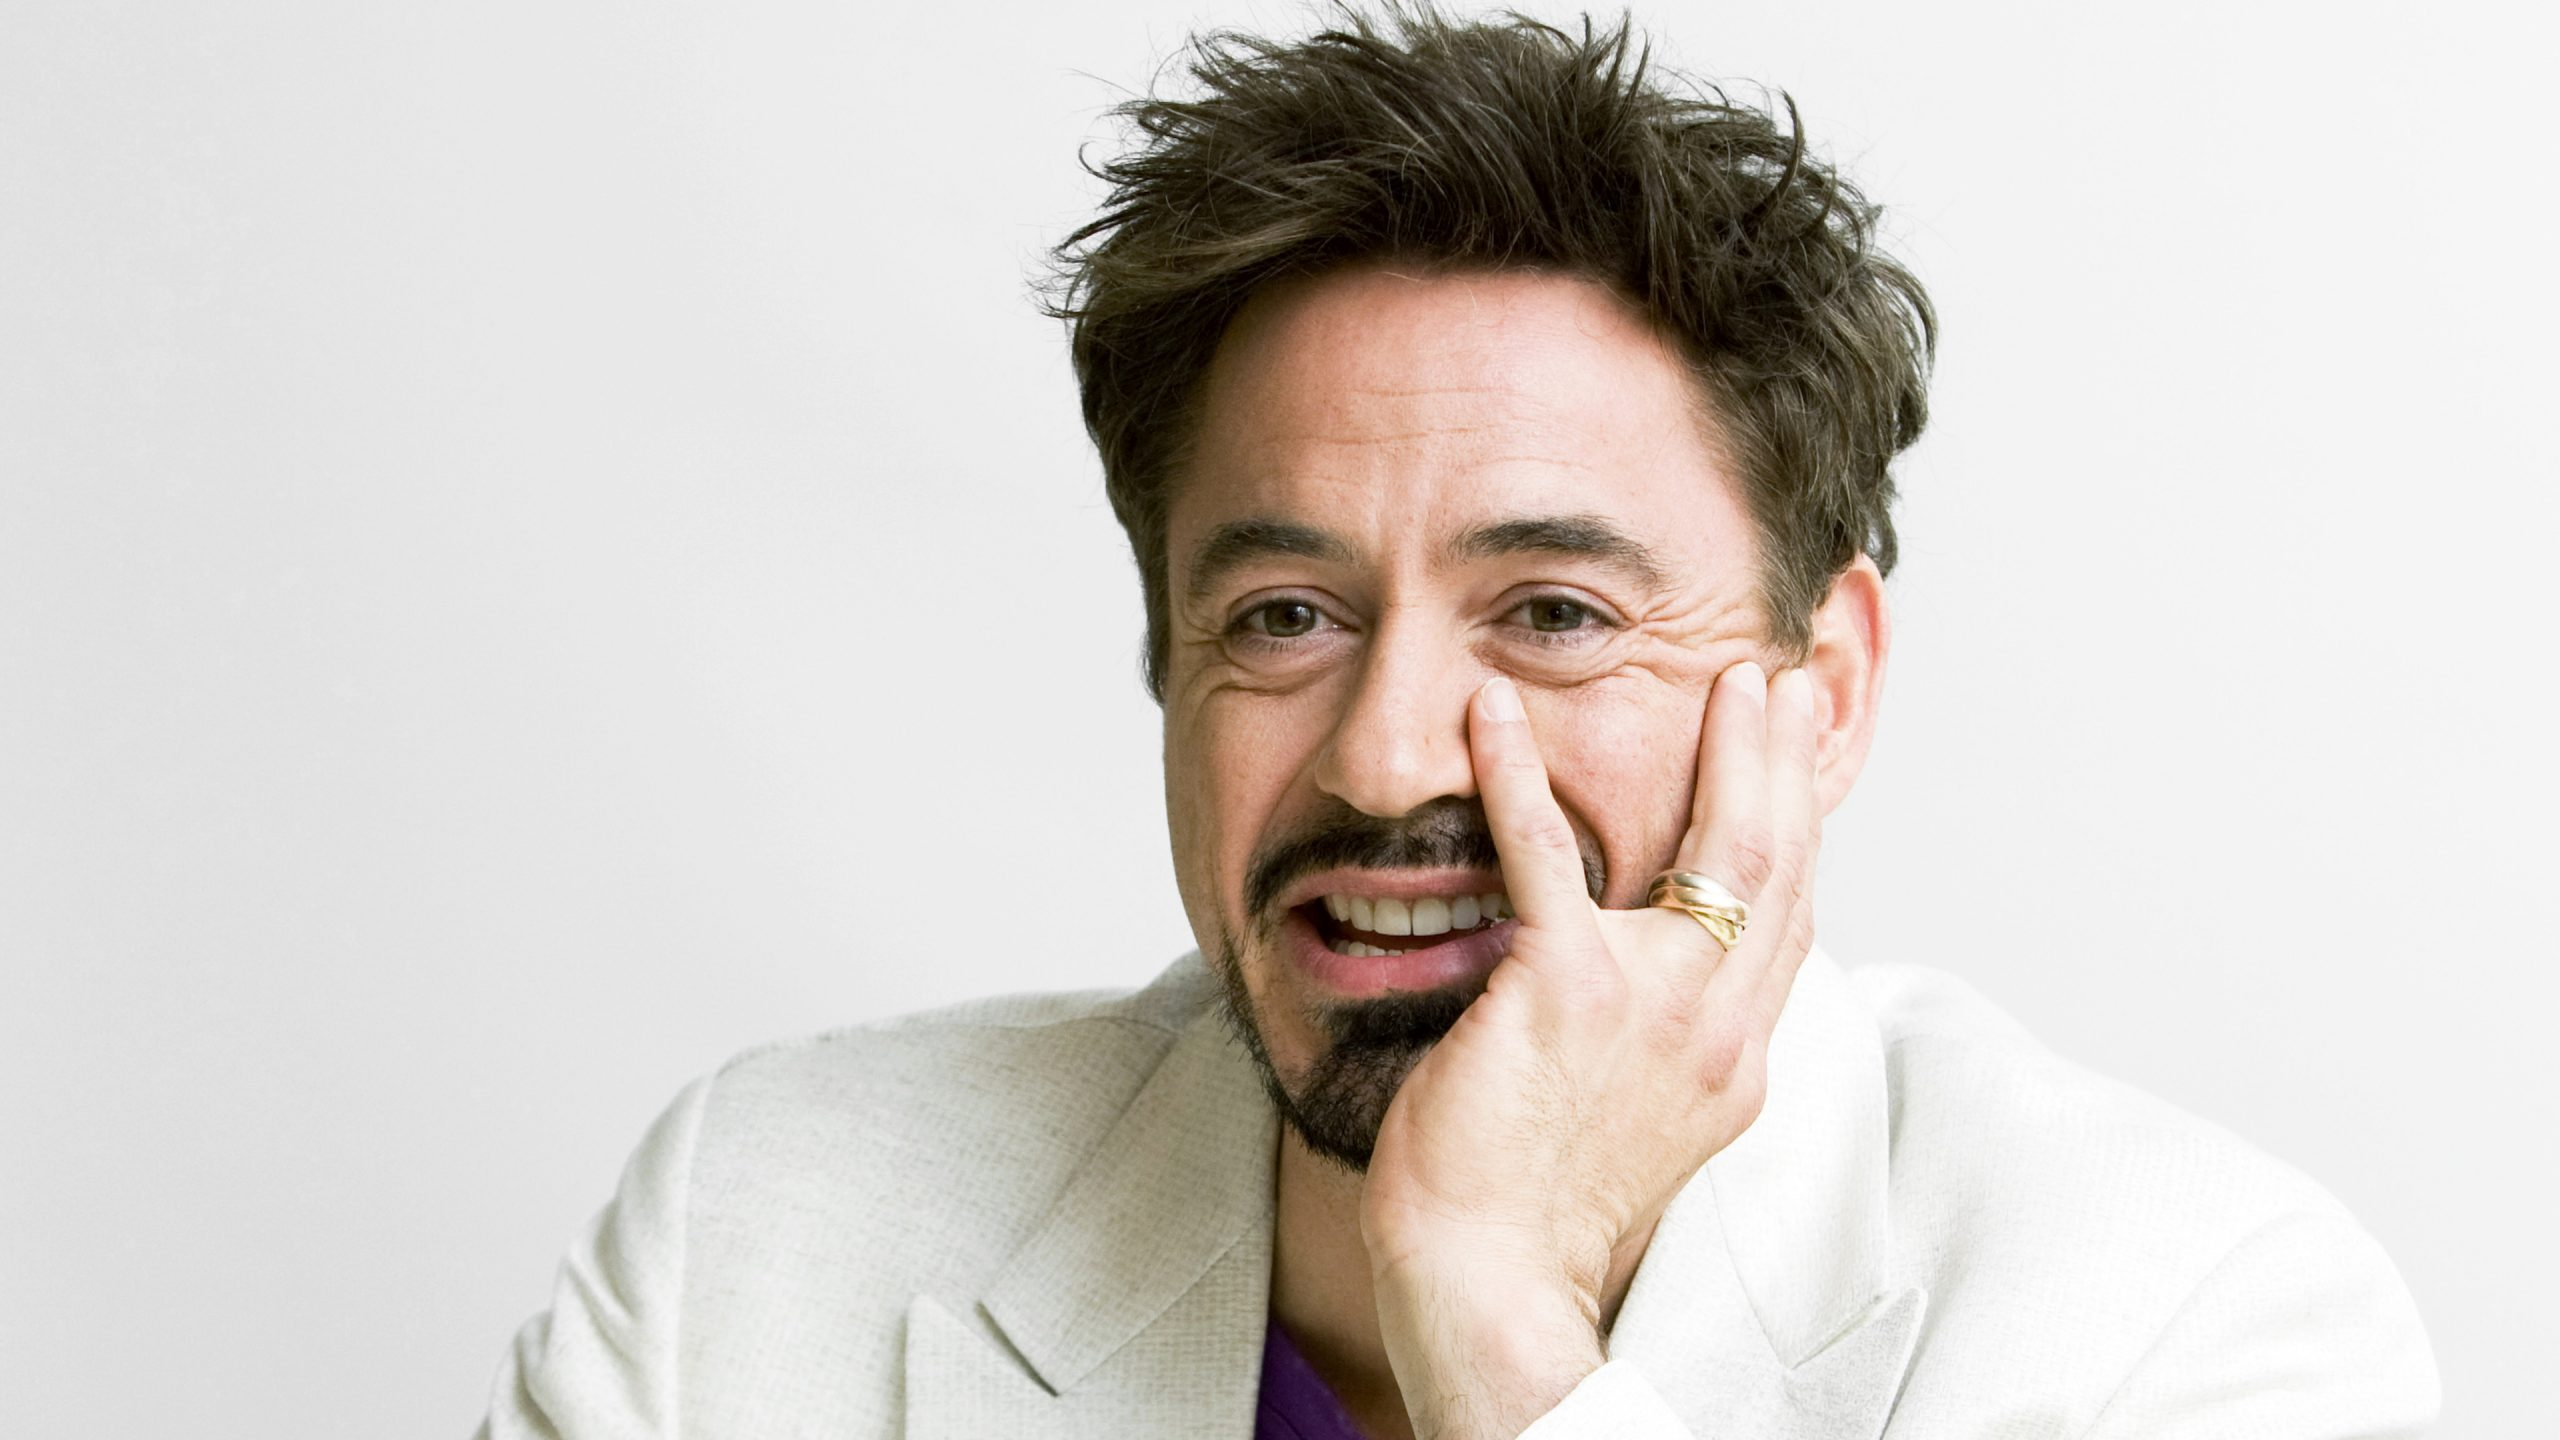 Robert-Downey-Jr.-Wiki-Biography-Age-Height-Weight-Profile-Body Measurement